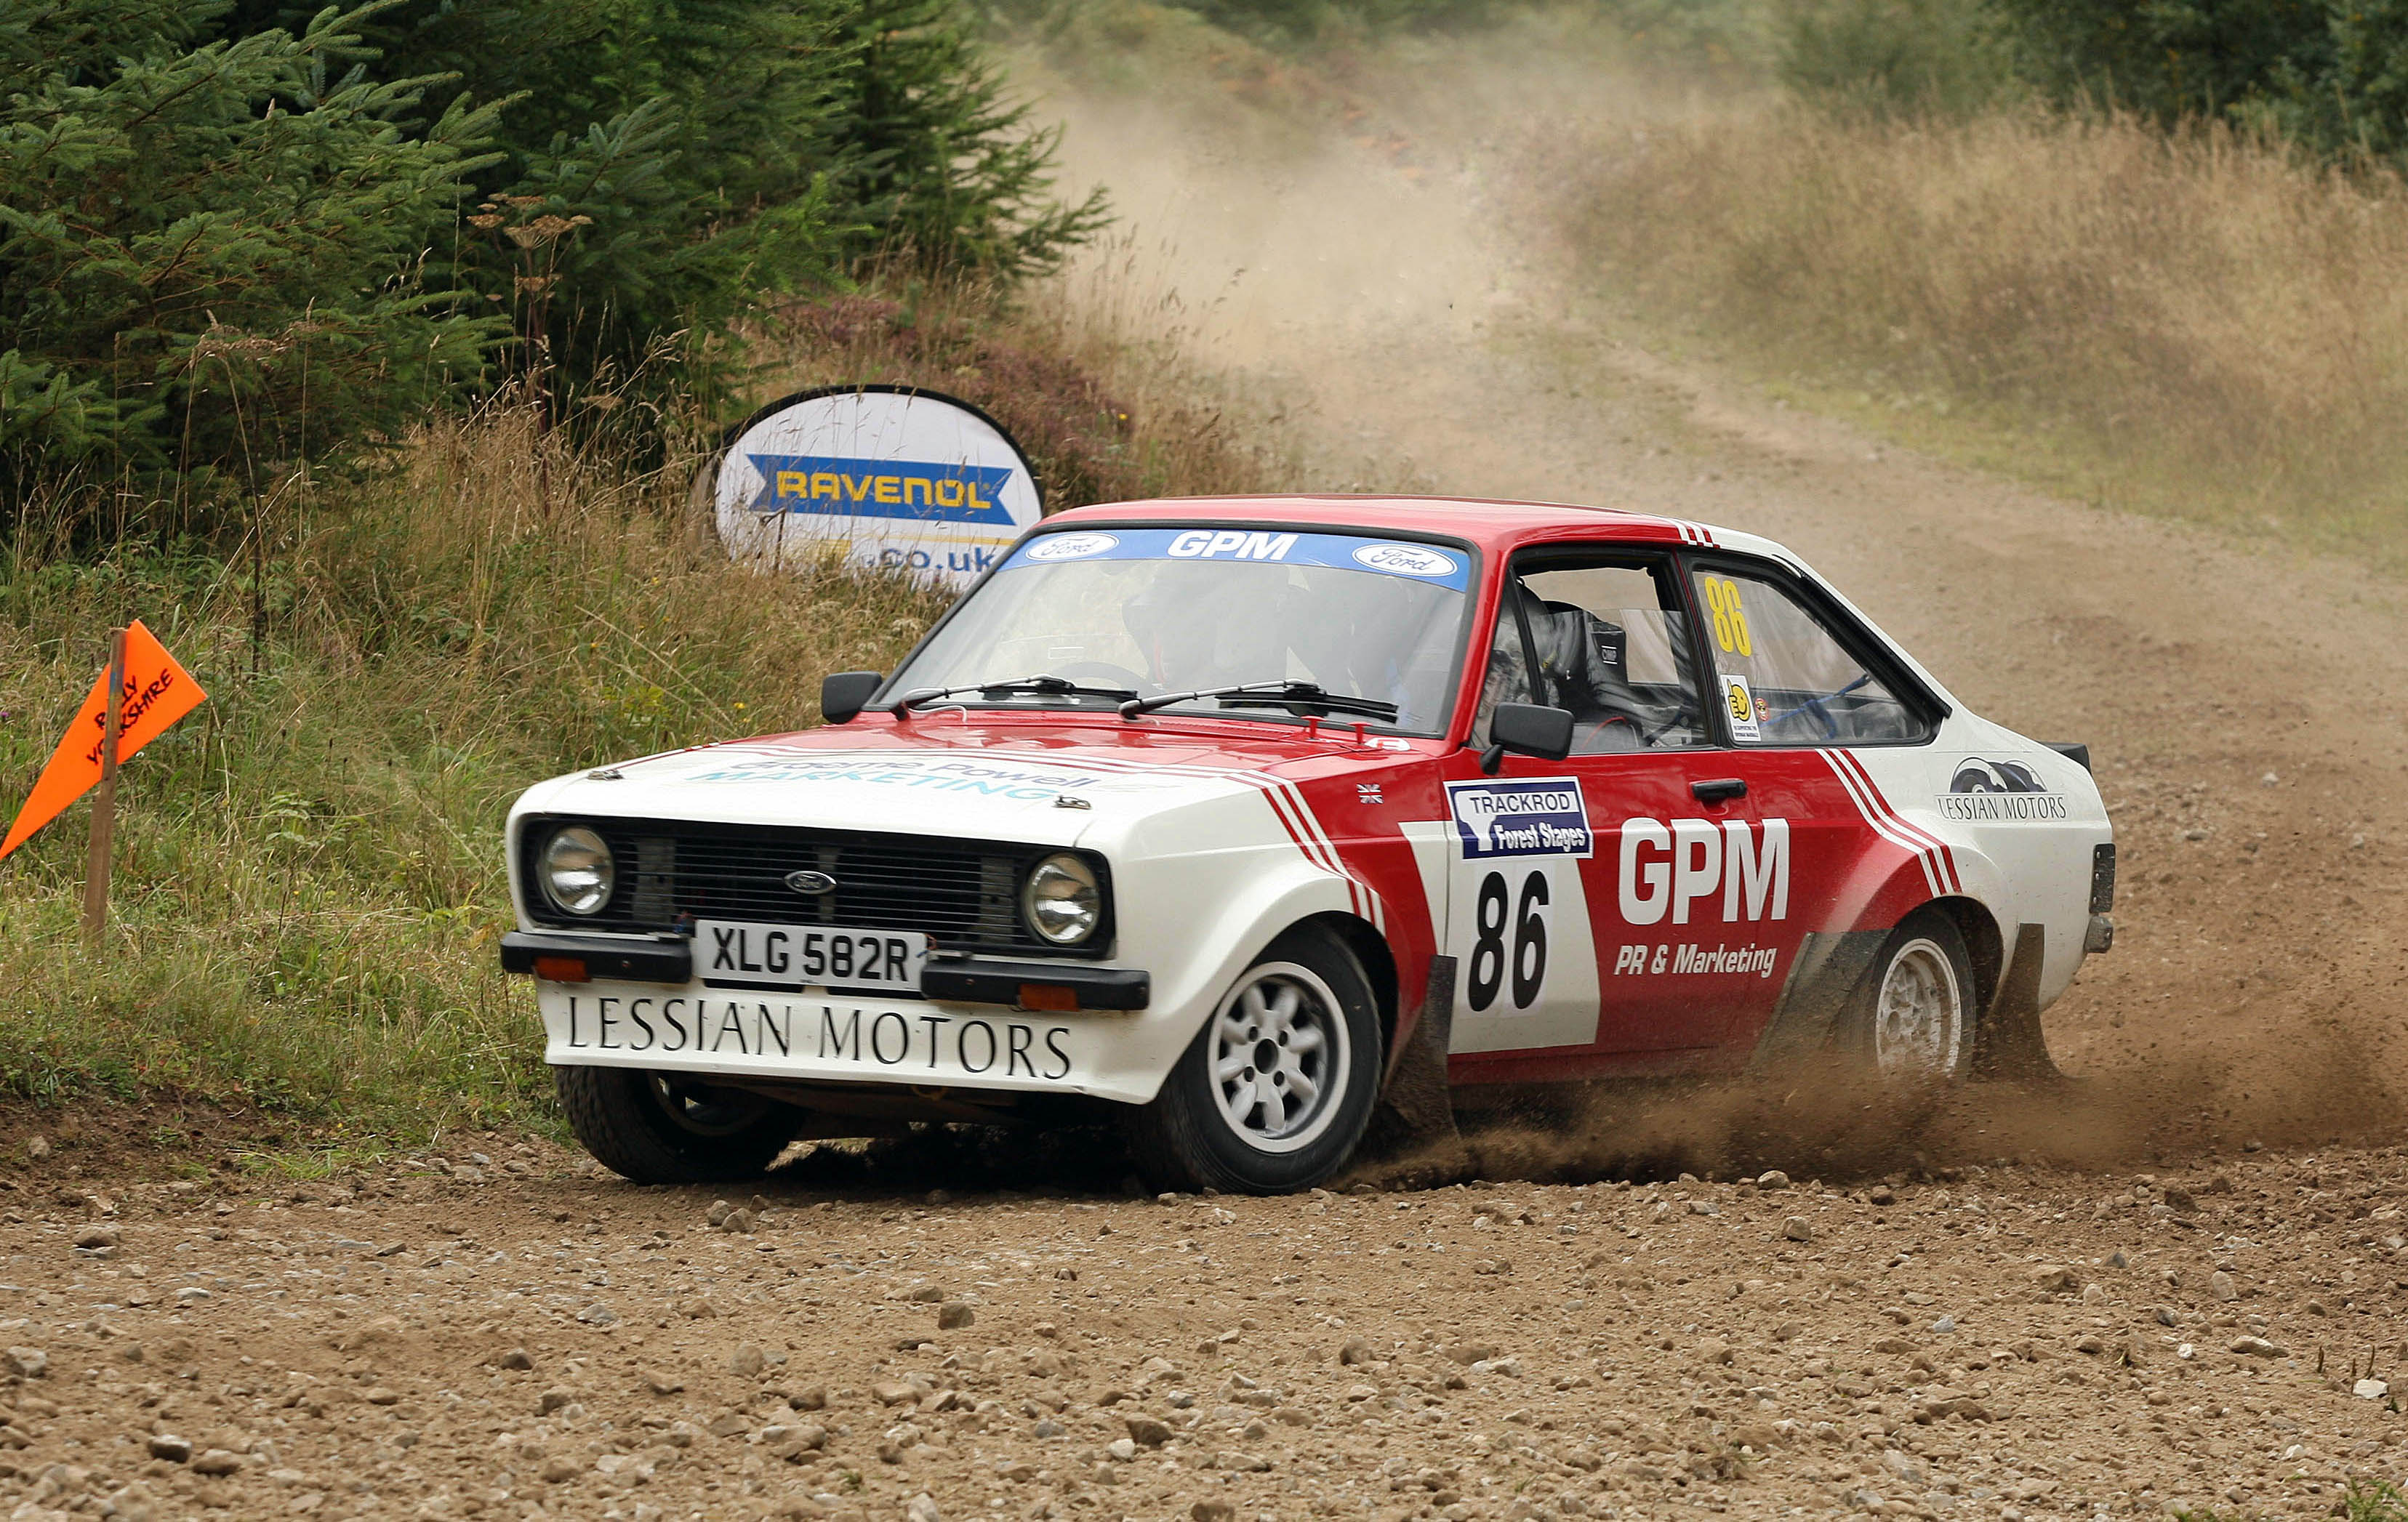 HISTORIC RALLY VICTORY FOR GPM – www.gpm.org.uk